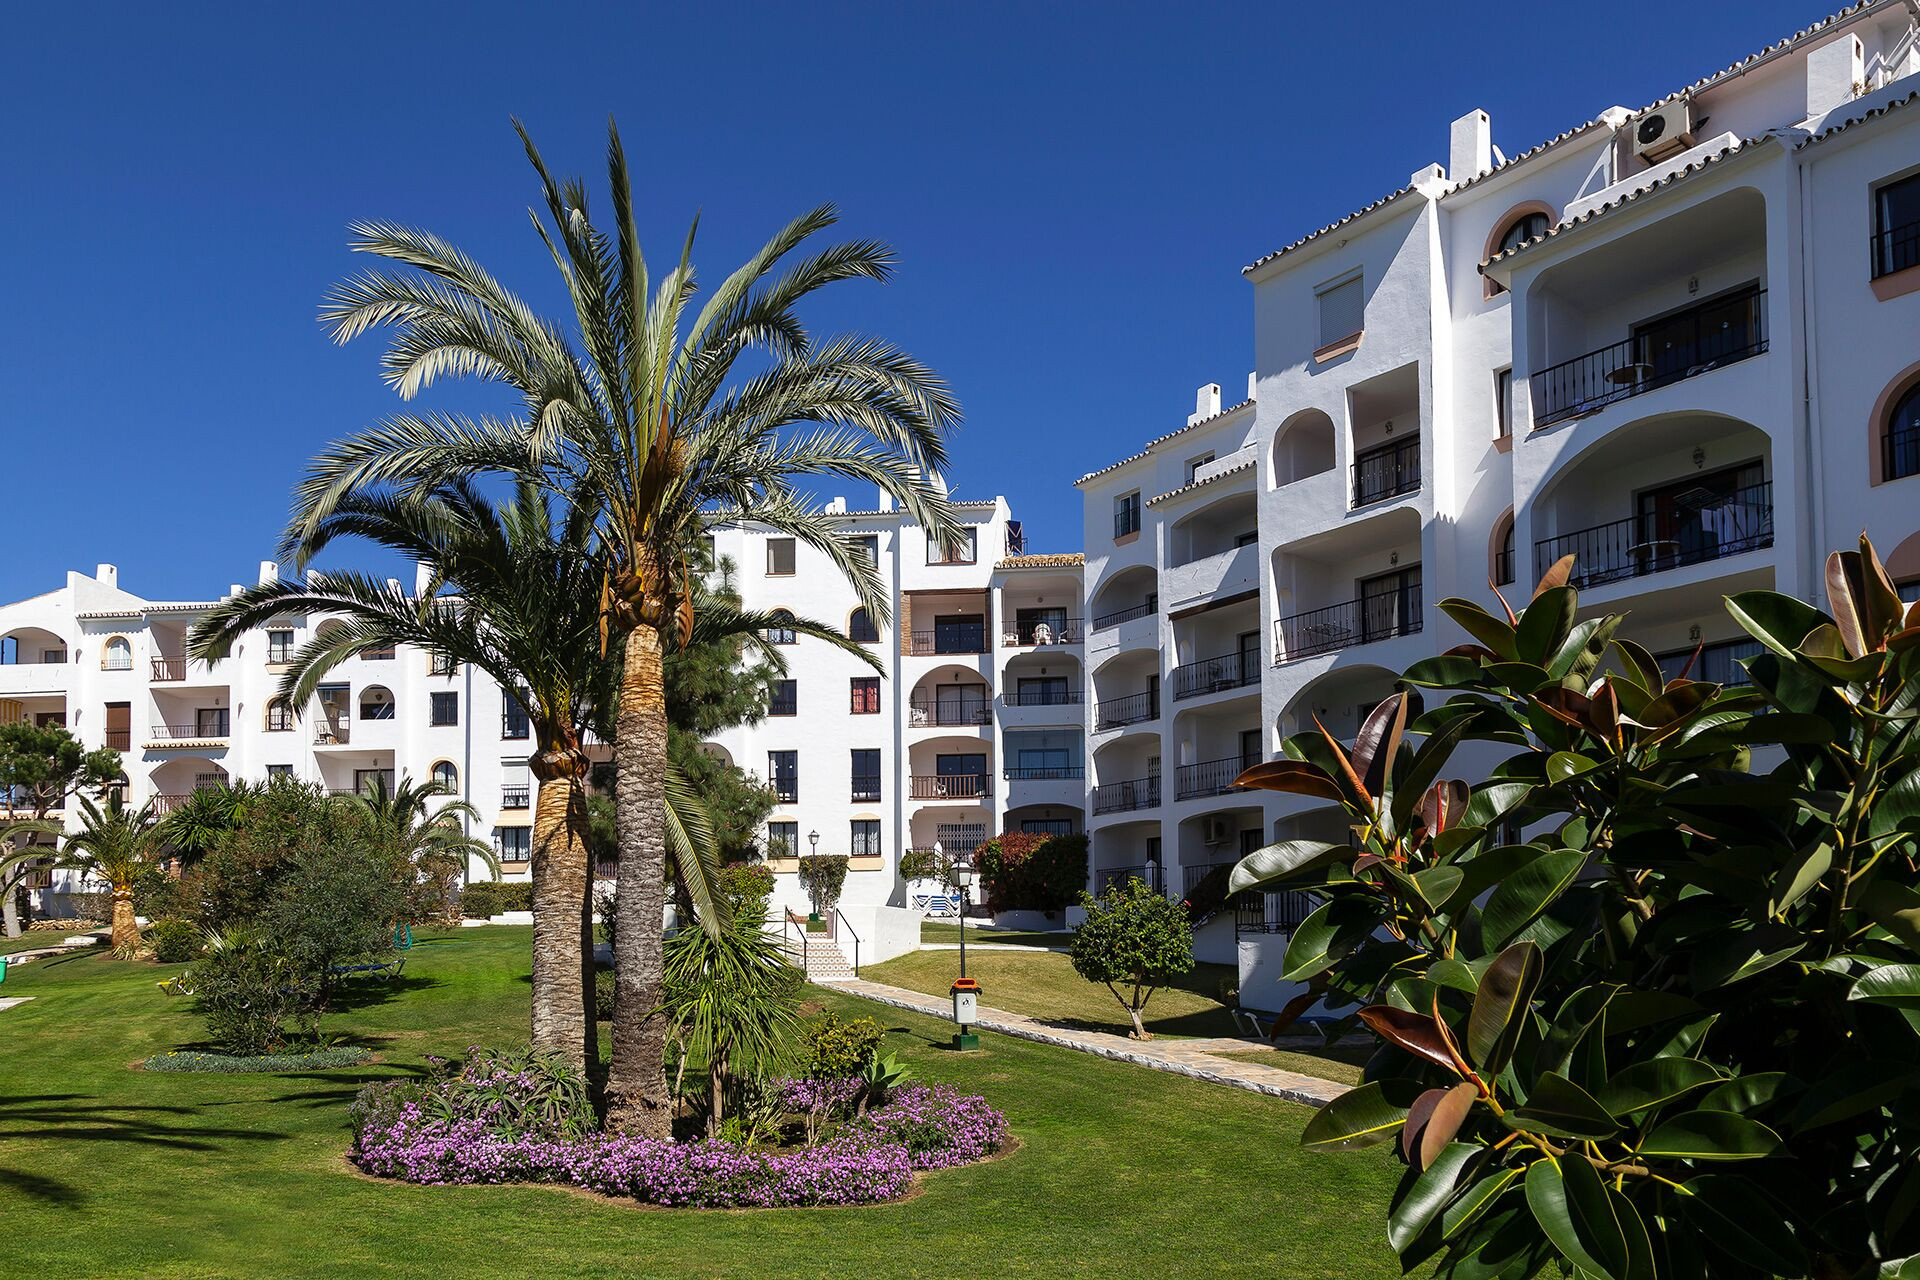 Lovely apartments for sale in Riviera - Mijas costa